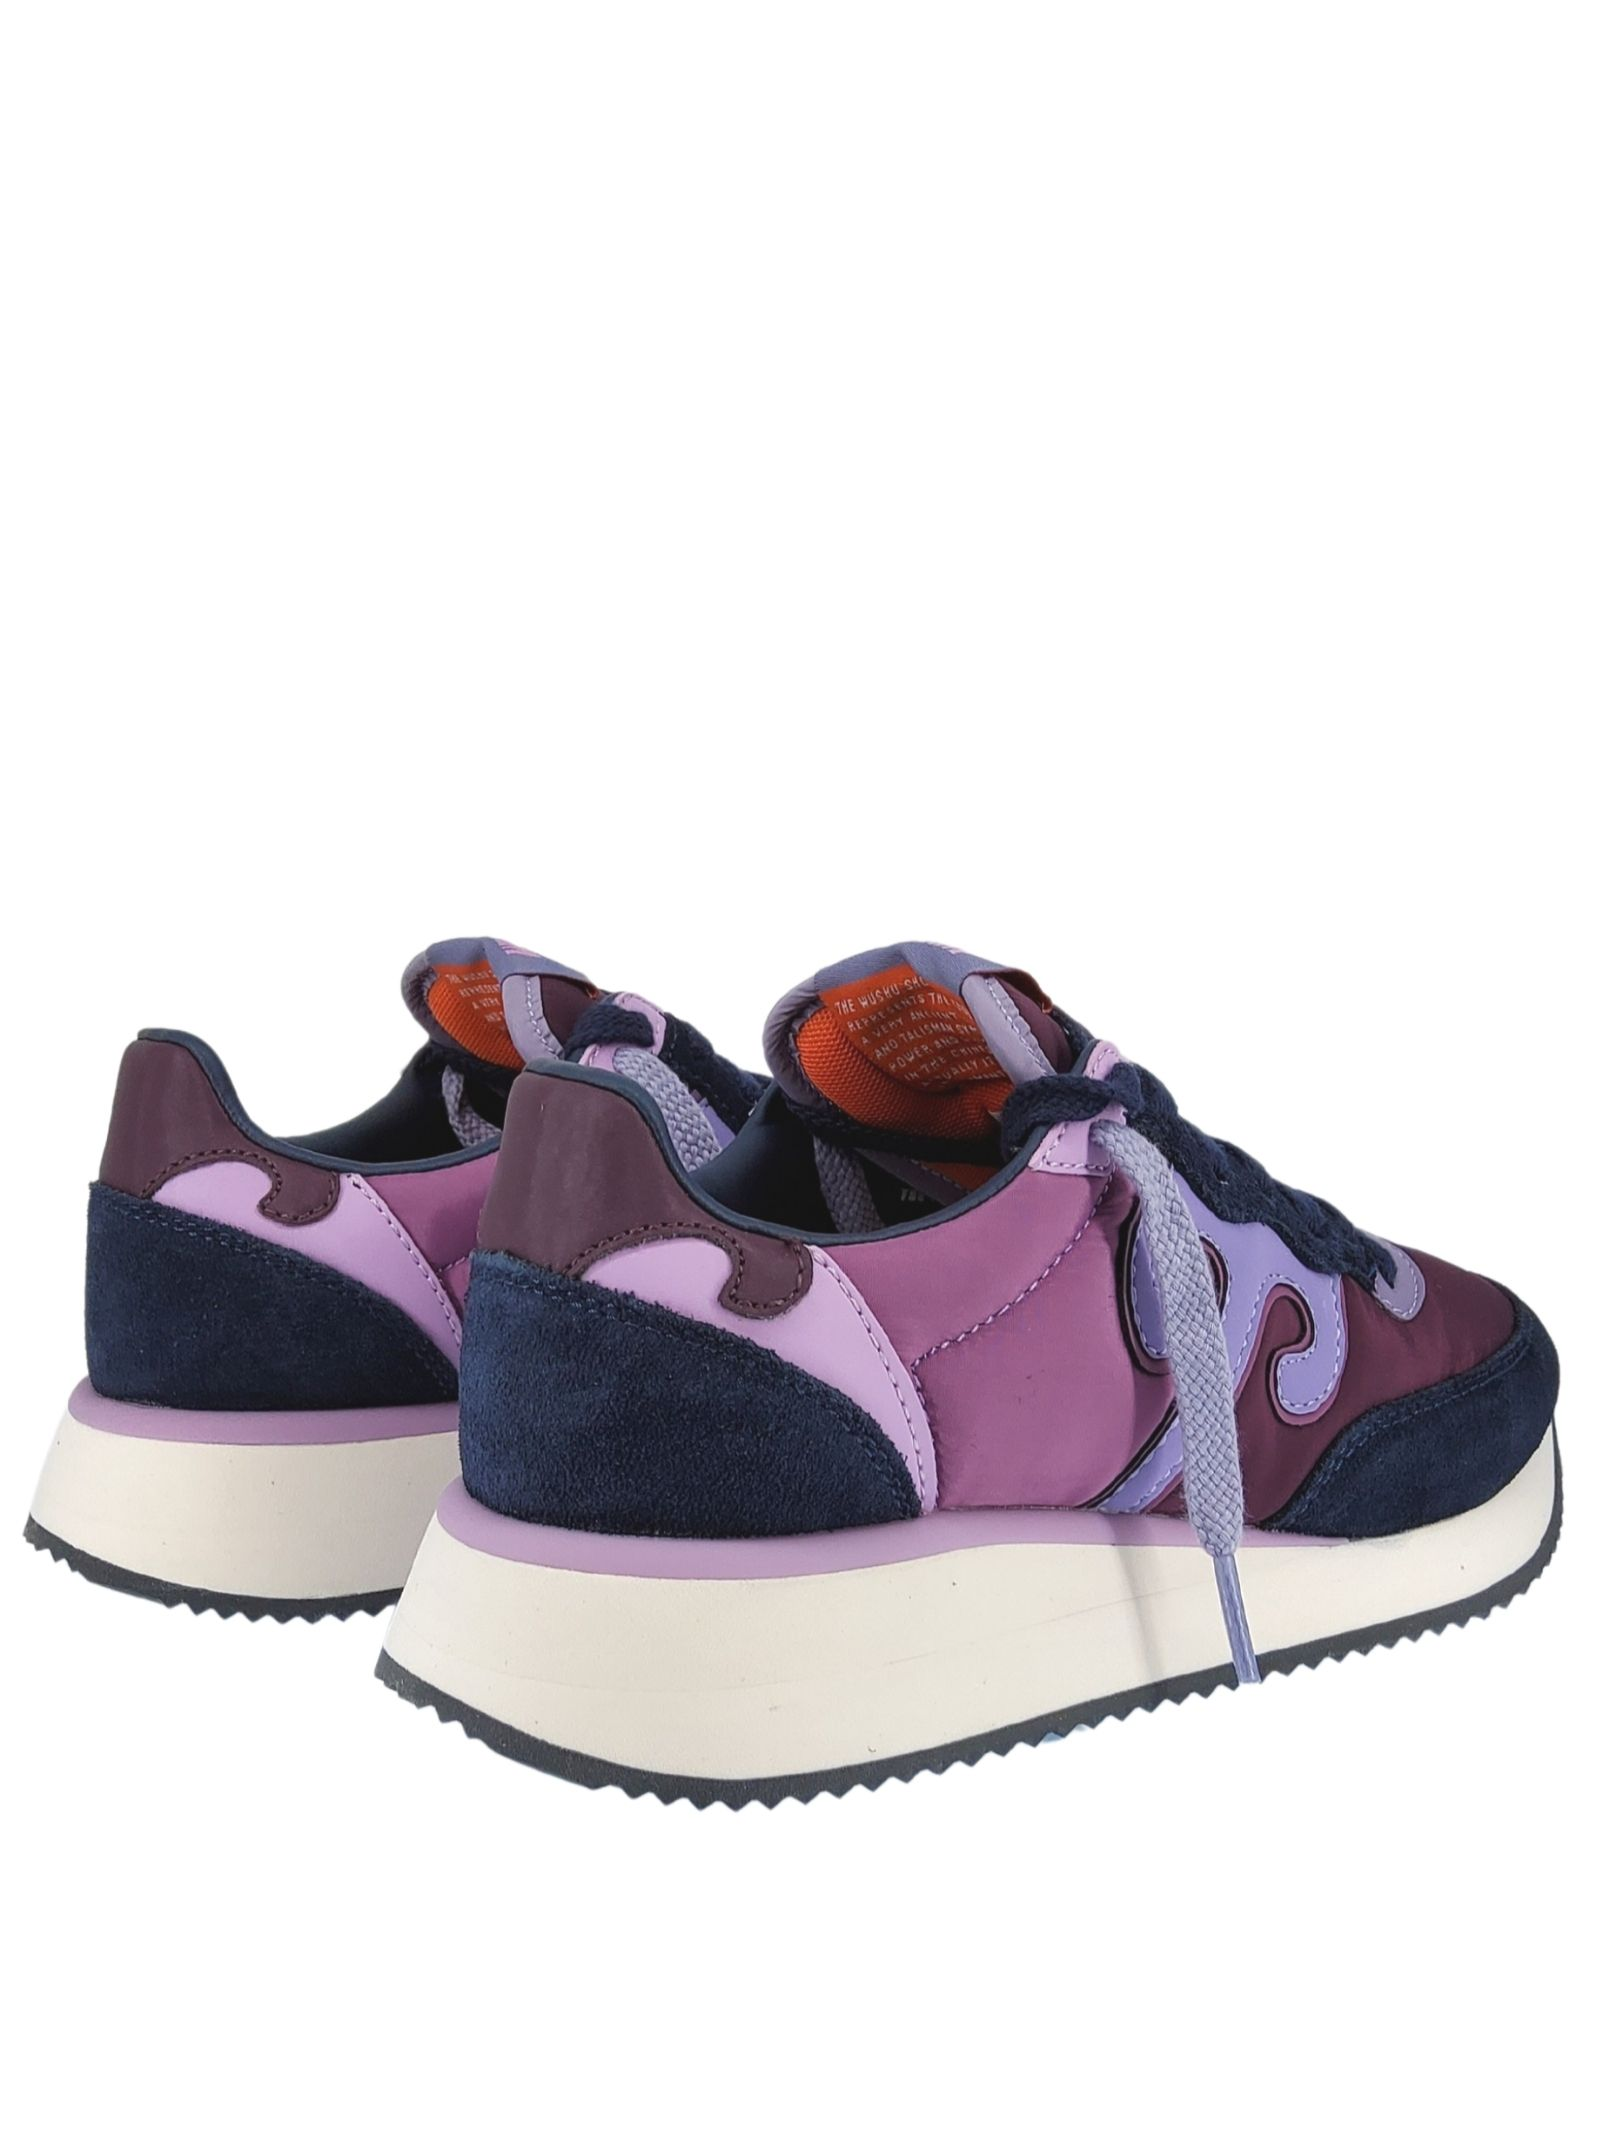 Women's Shoes Sneakers Master in Purple Leather and Wisteria Fabric with White Rubber High Bottom Wushu | Sneakers | 000215M215